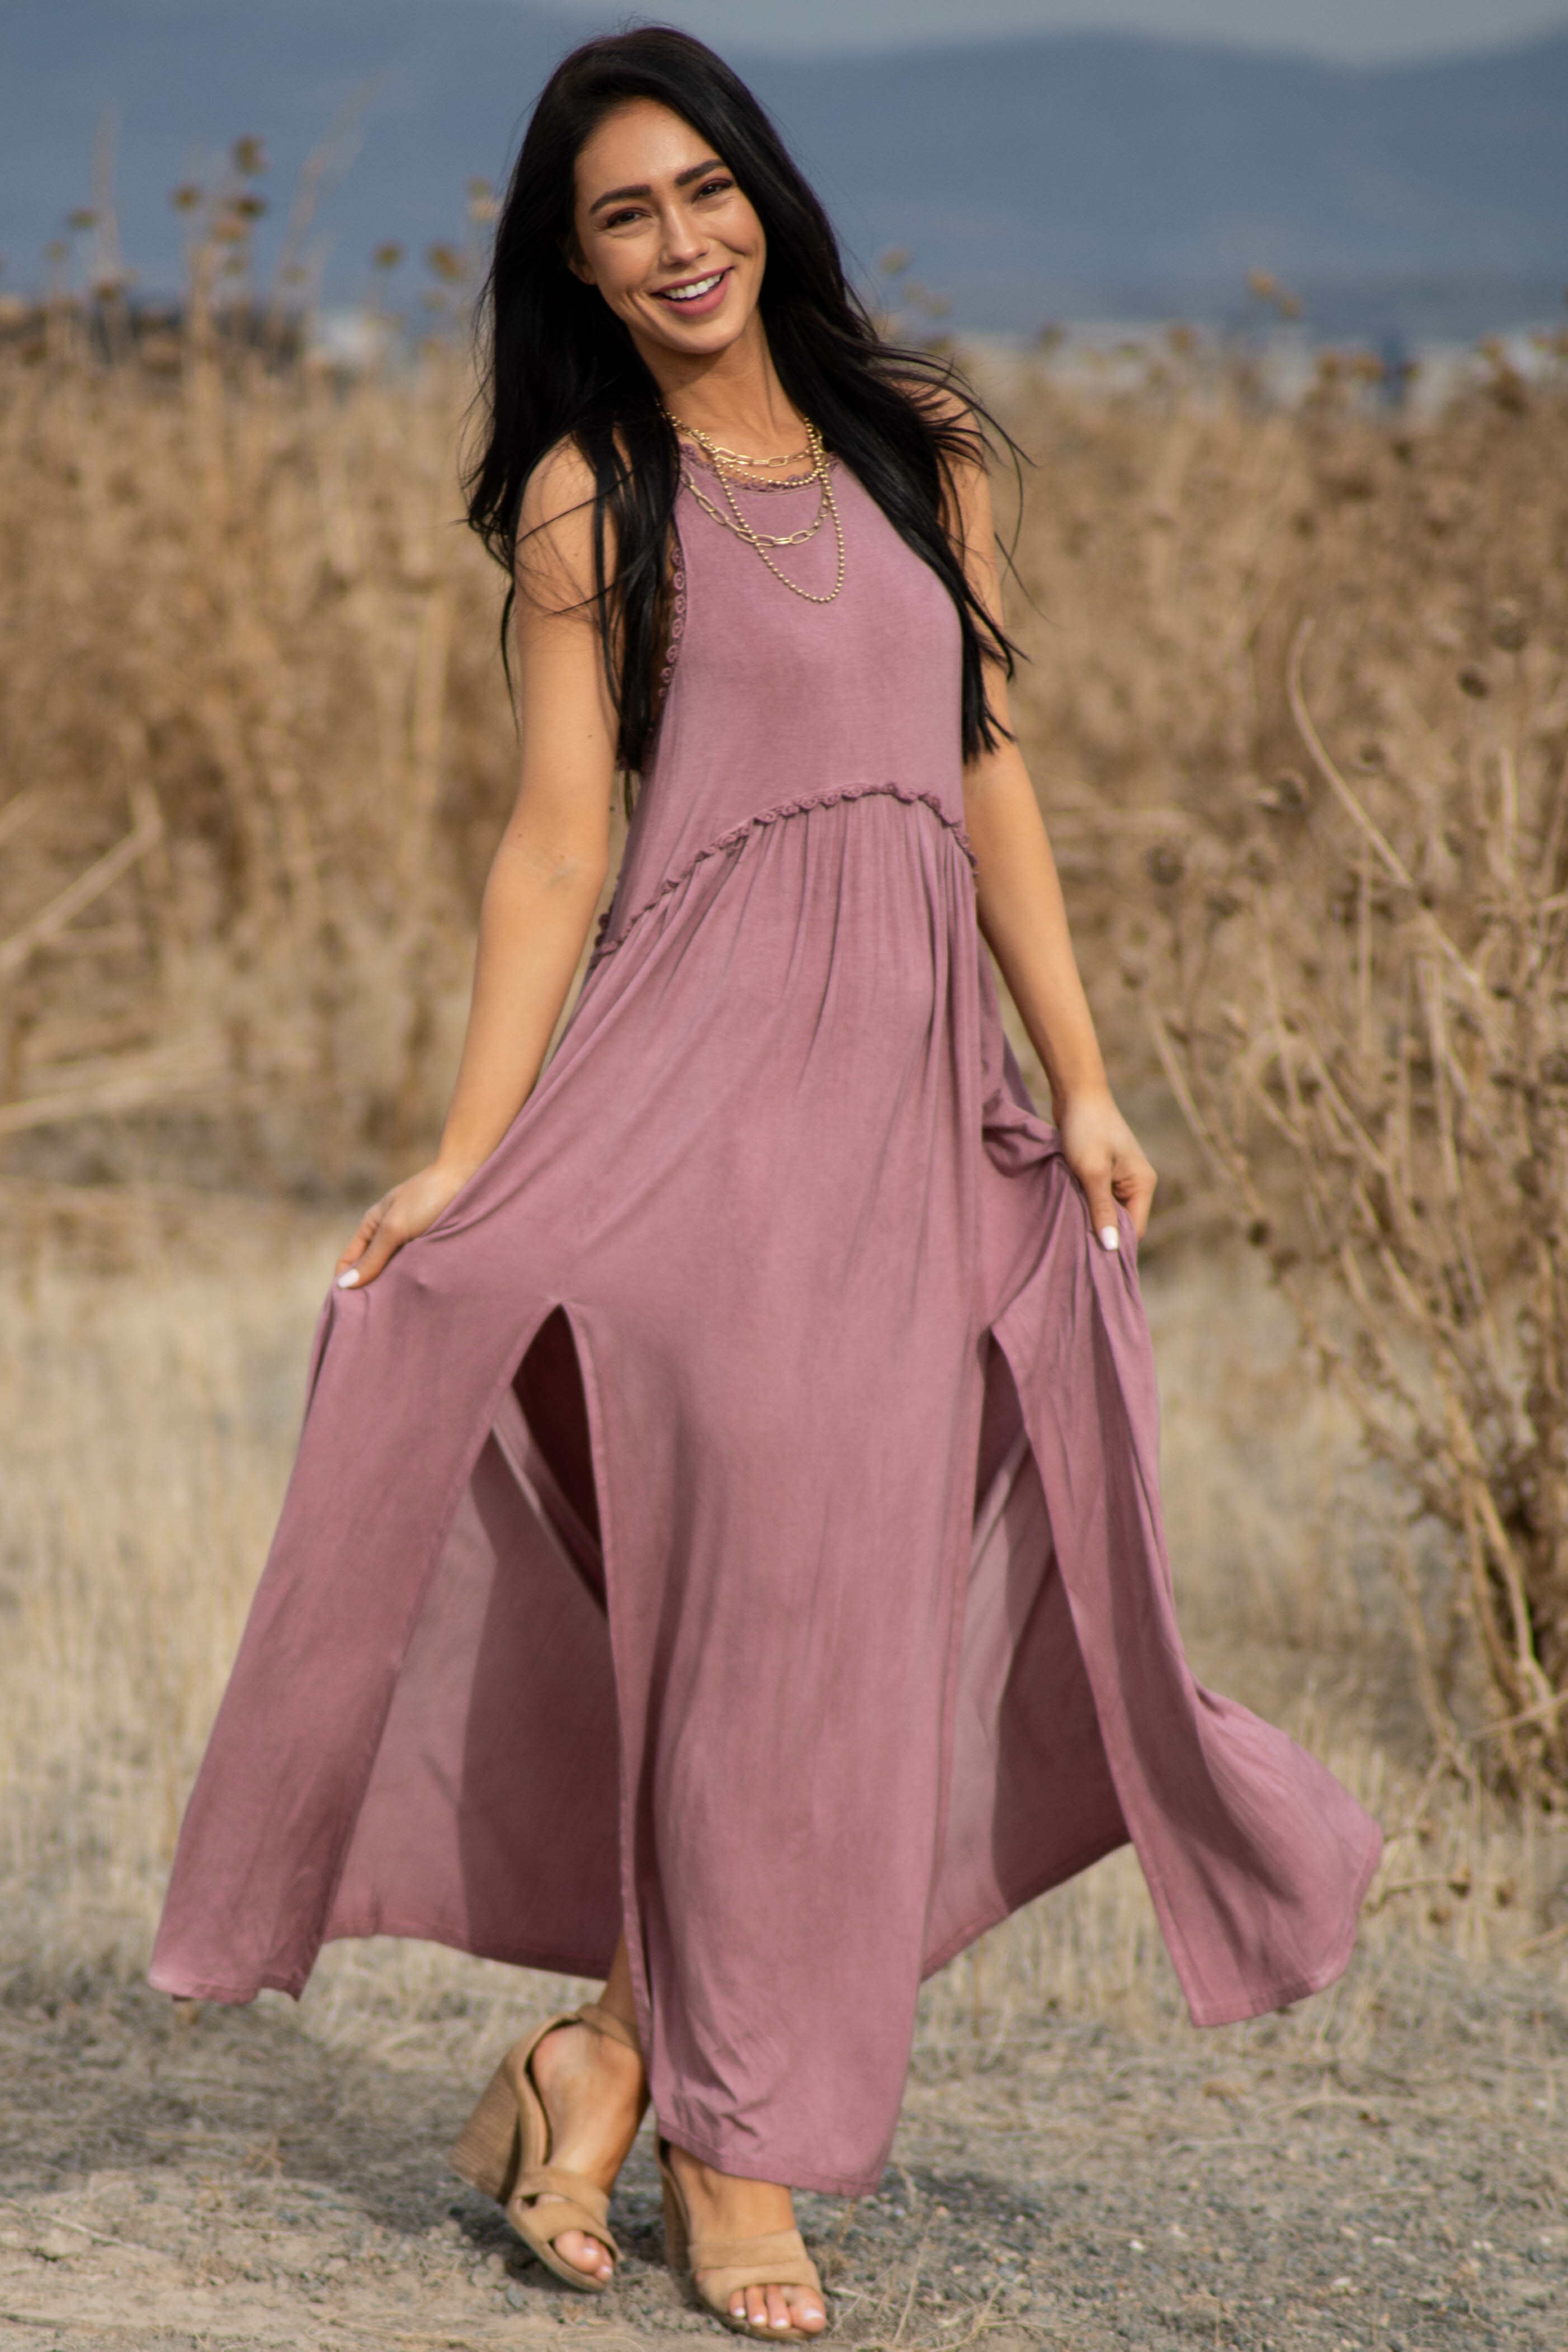 Dusty Mauve Sleeveless Maxi Dress with Side Slit Details